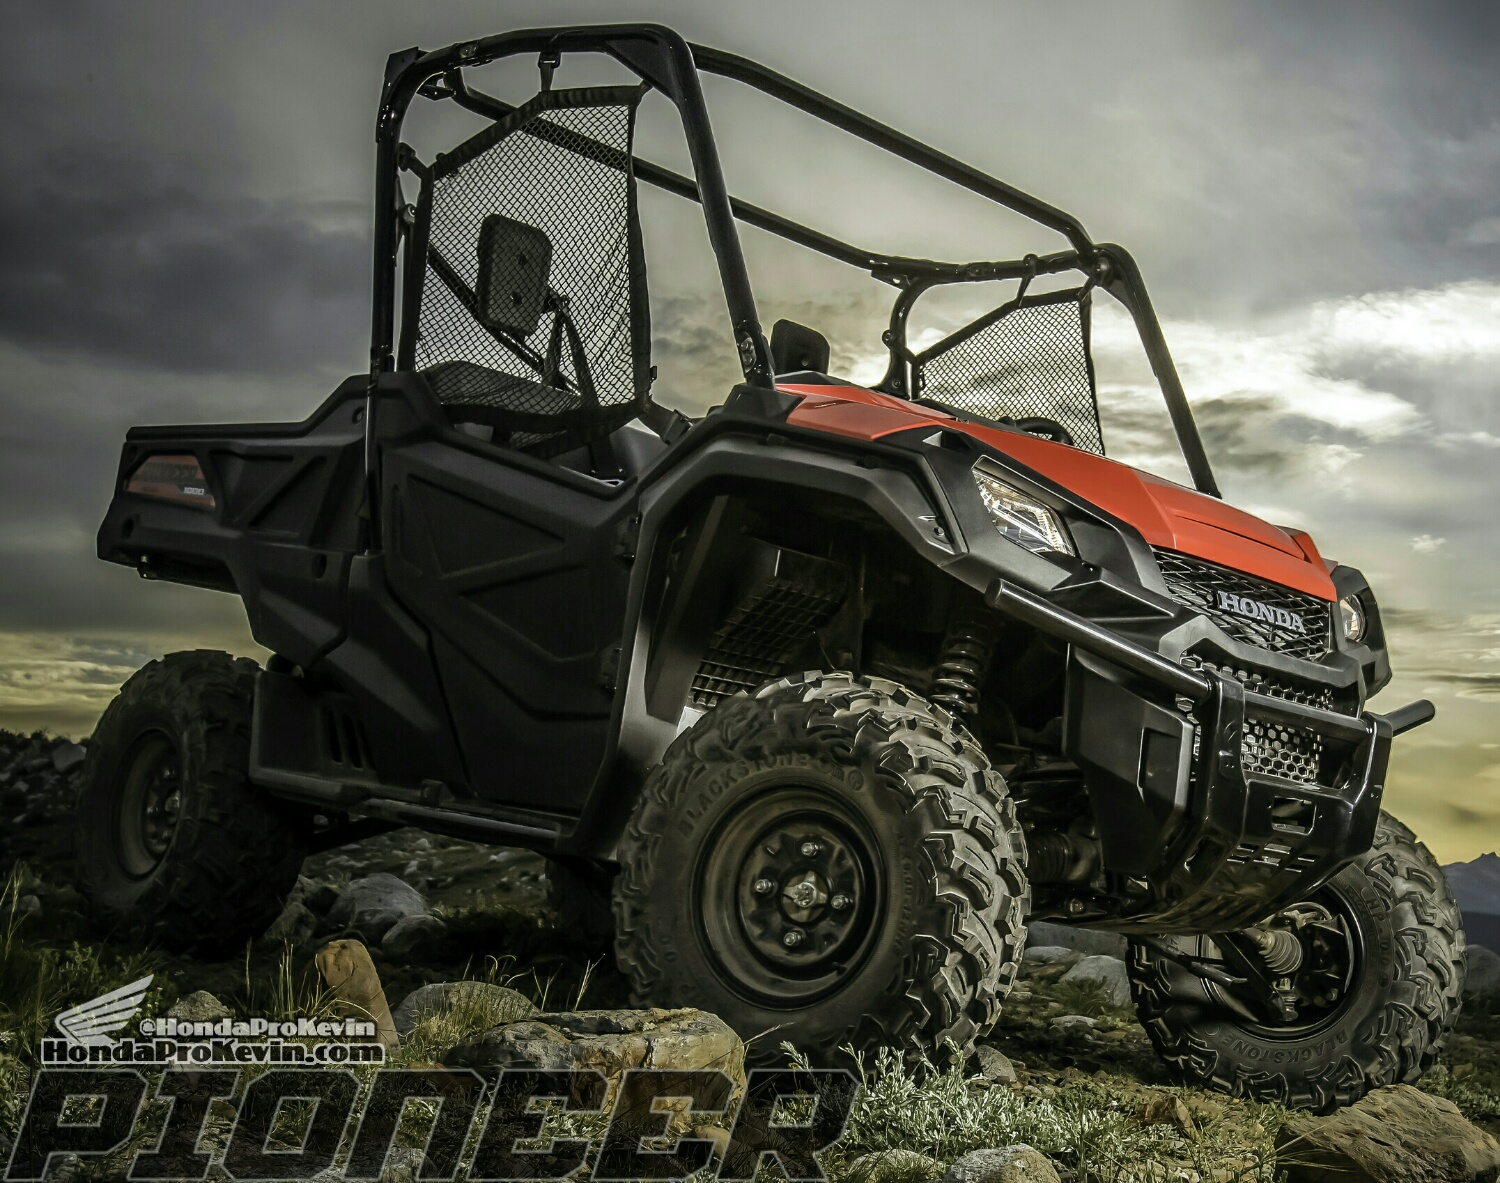 New 2016 Pioneer 1000 Honda SxS / UTV / Side by Side ATV - SXS1000 - SXS1000M3